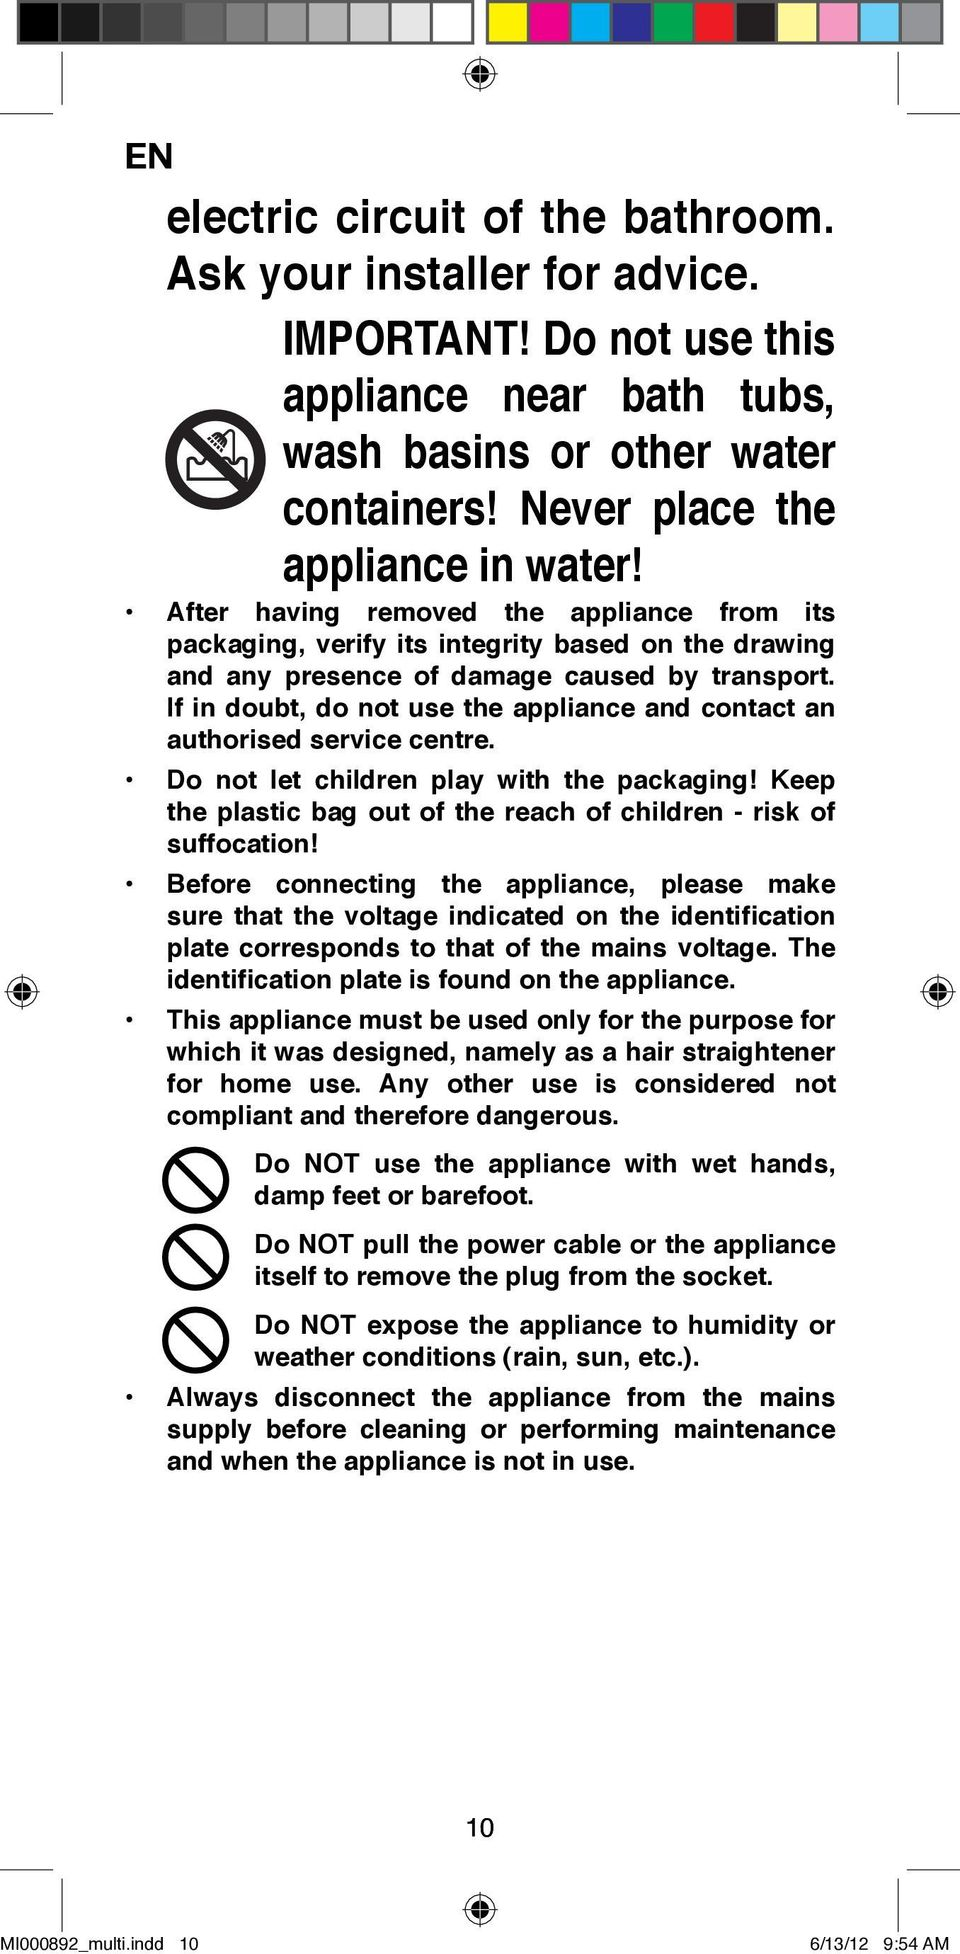 If in doubt, do not use the appliance and contact an authorised service centre. Do not let children play with the packaging! Keep the plastic bag out of the reach of children - risk of suffocation!